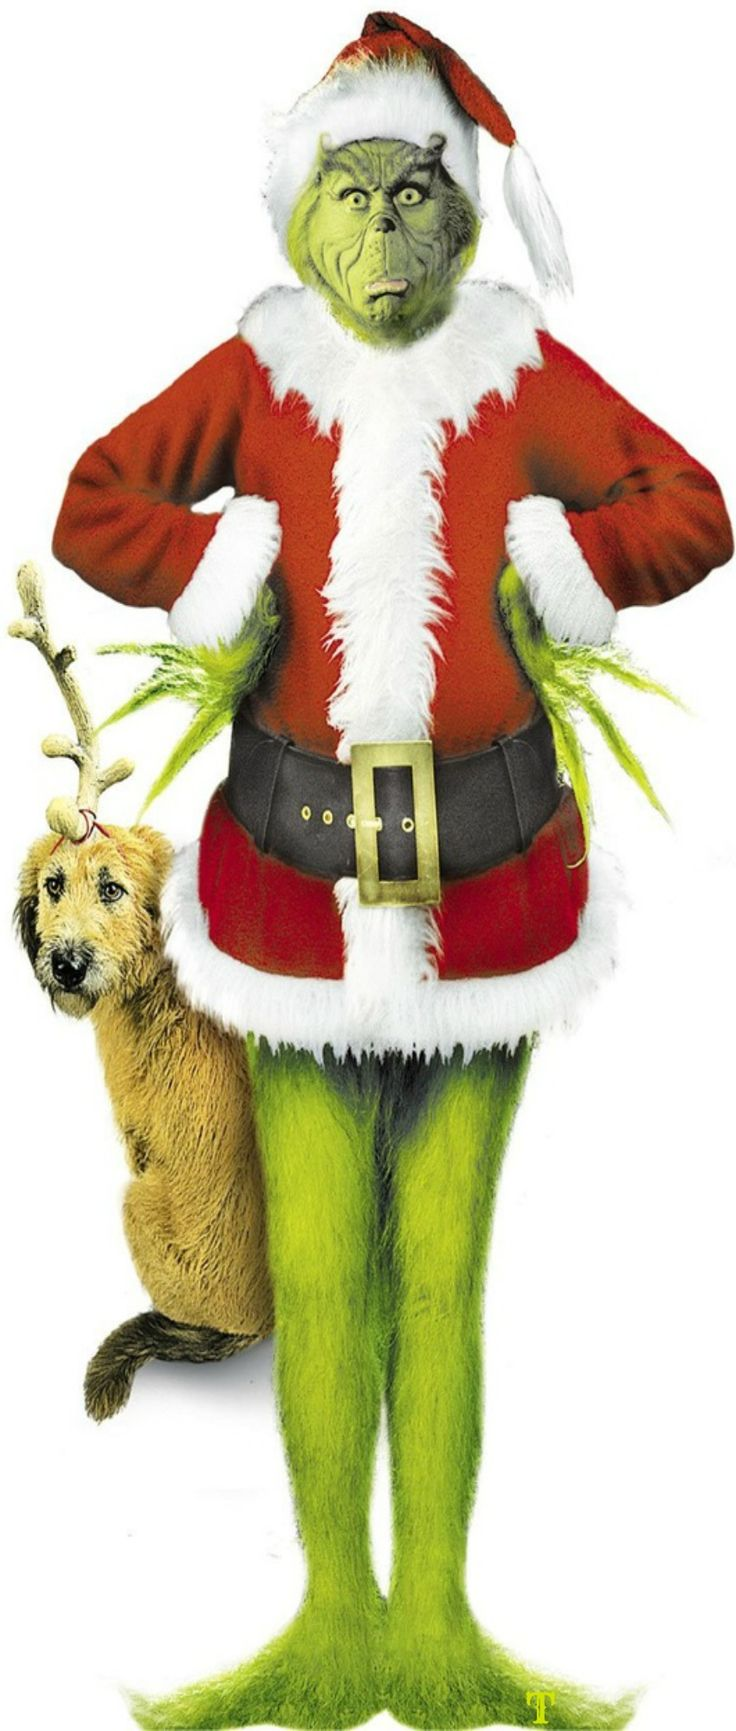 How to make your own grinch costume - How The Who Grinch Stole Christmas